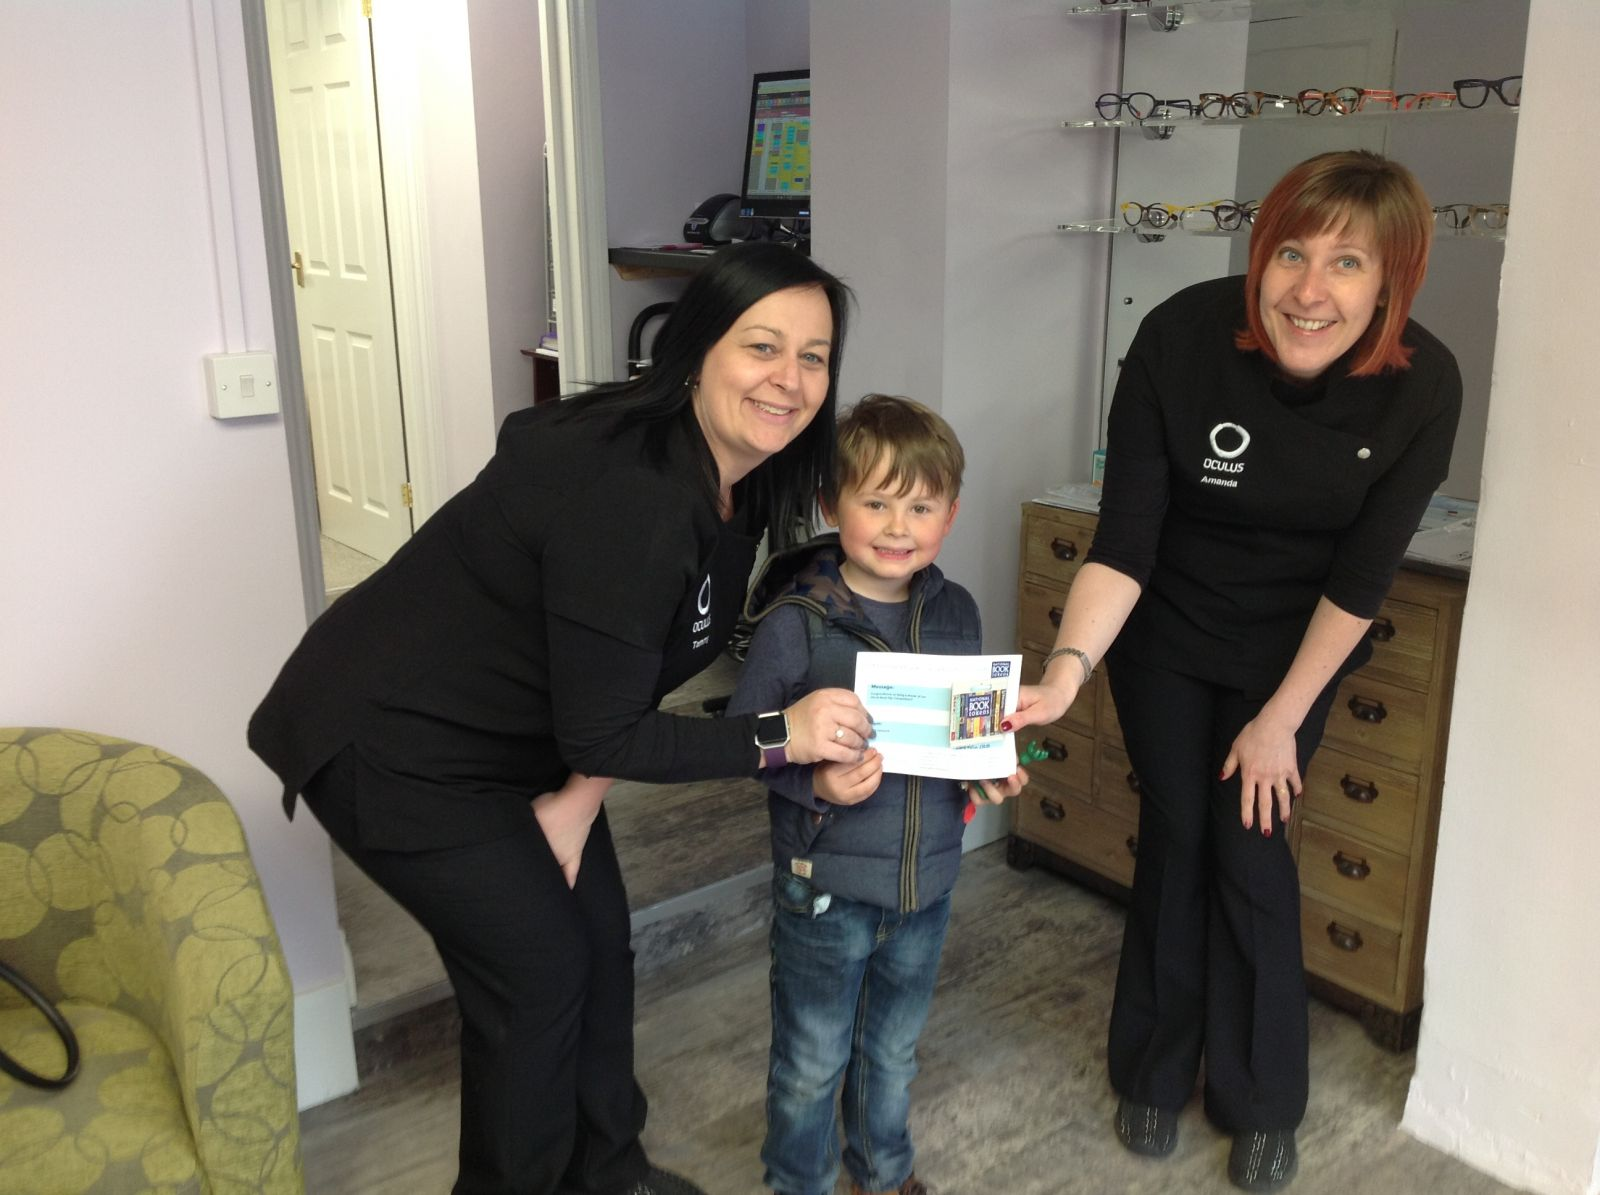 Zachary collected his book vouchers from Oculus Contact Lens Centre, Norwich